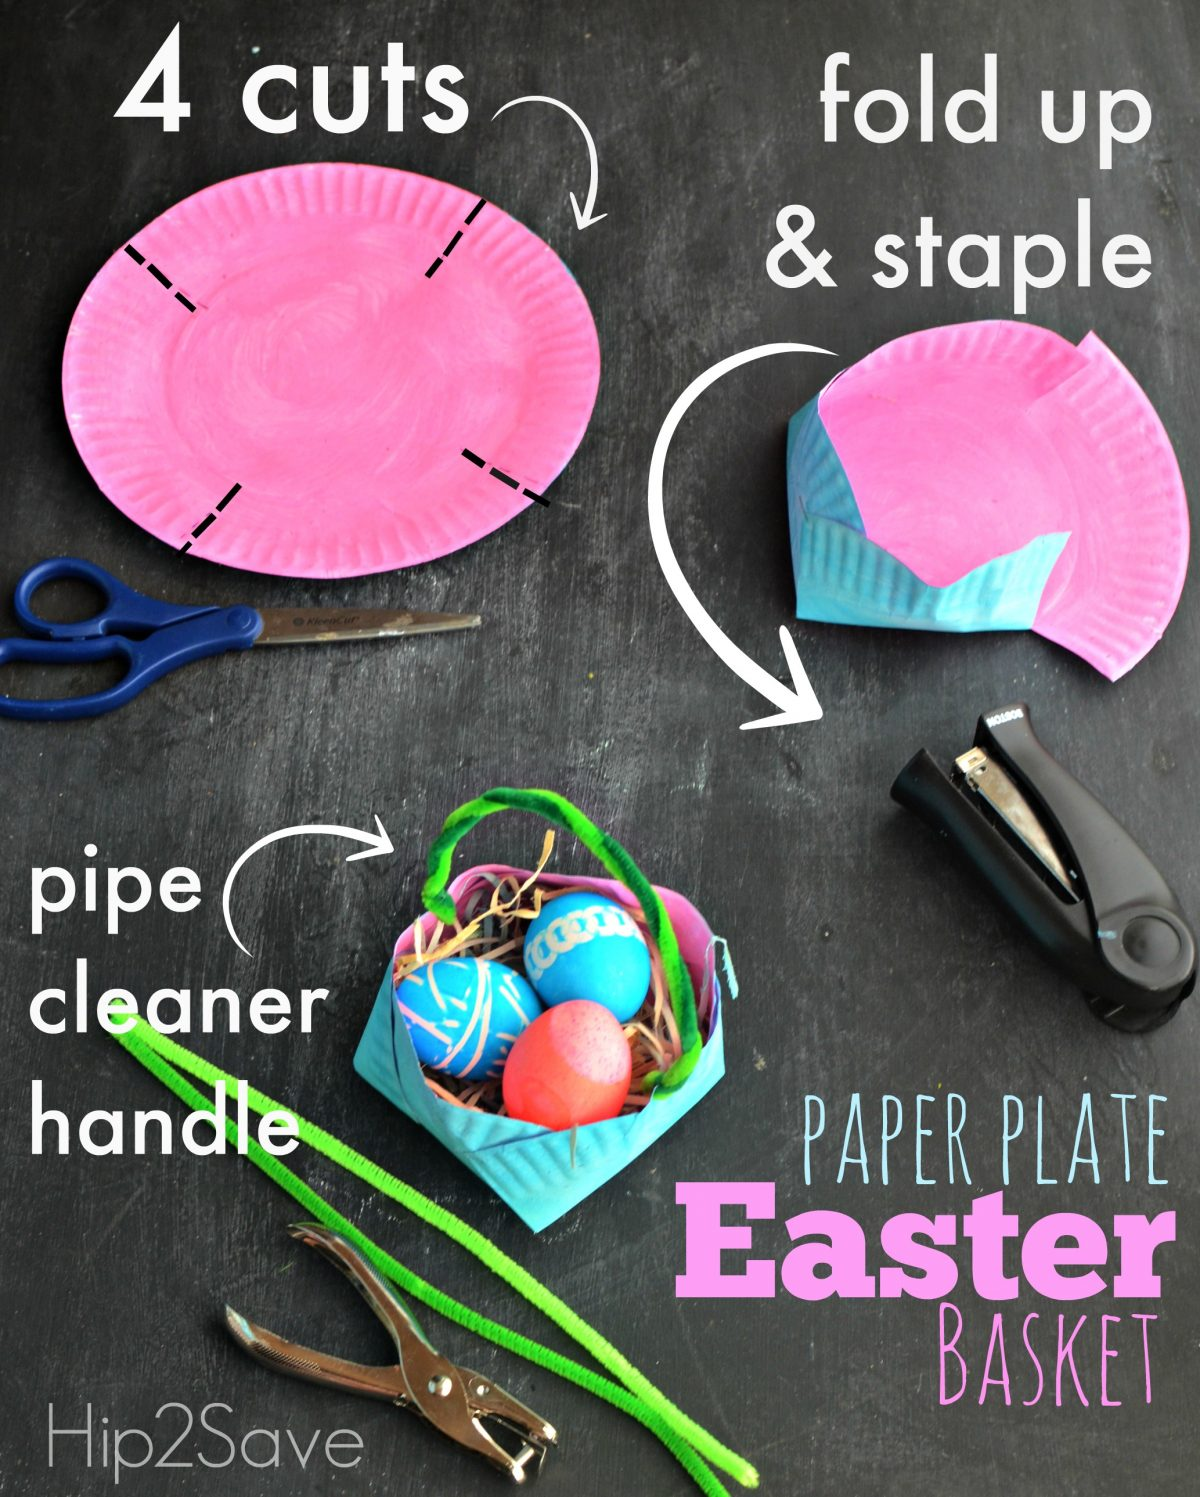 How to make an Easter basket out of a paper plate